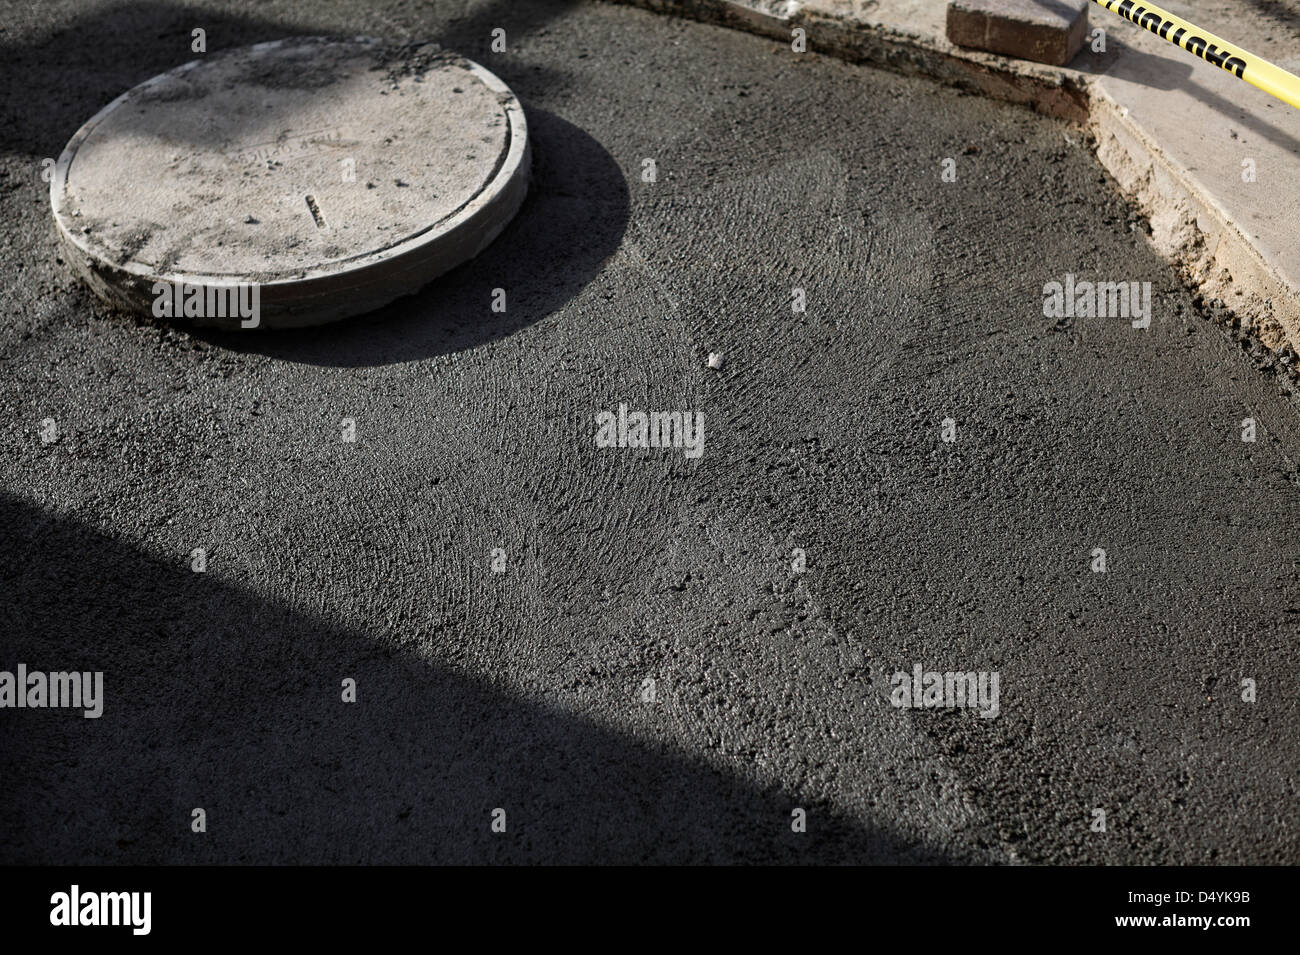 Freshly-poured concrete and utility access cover. - Stock Image